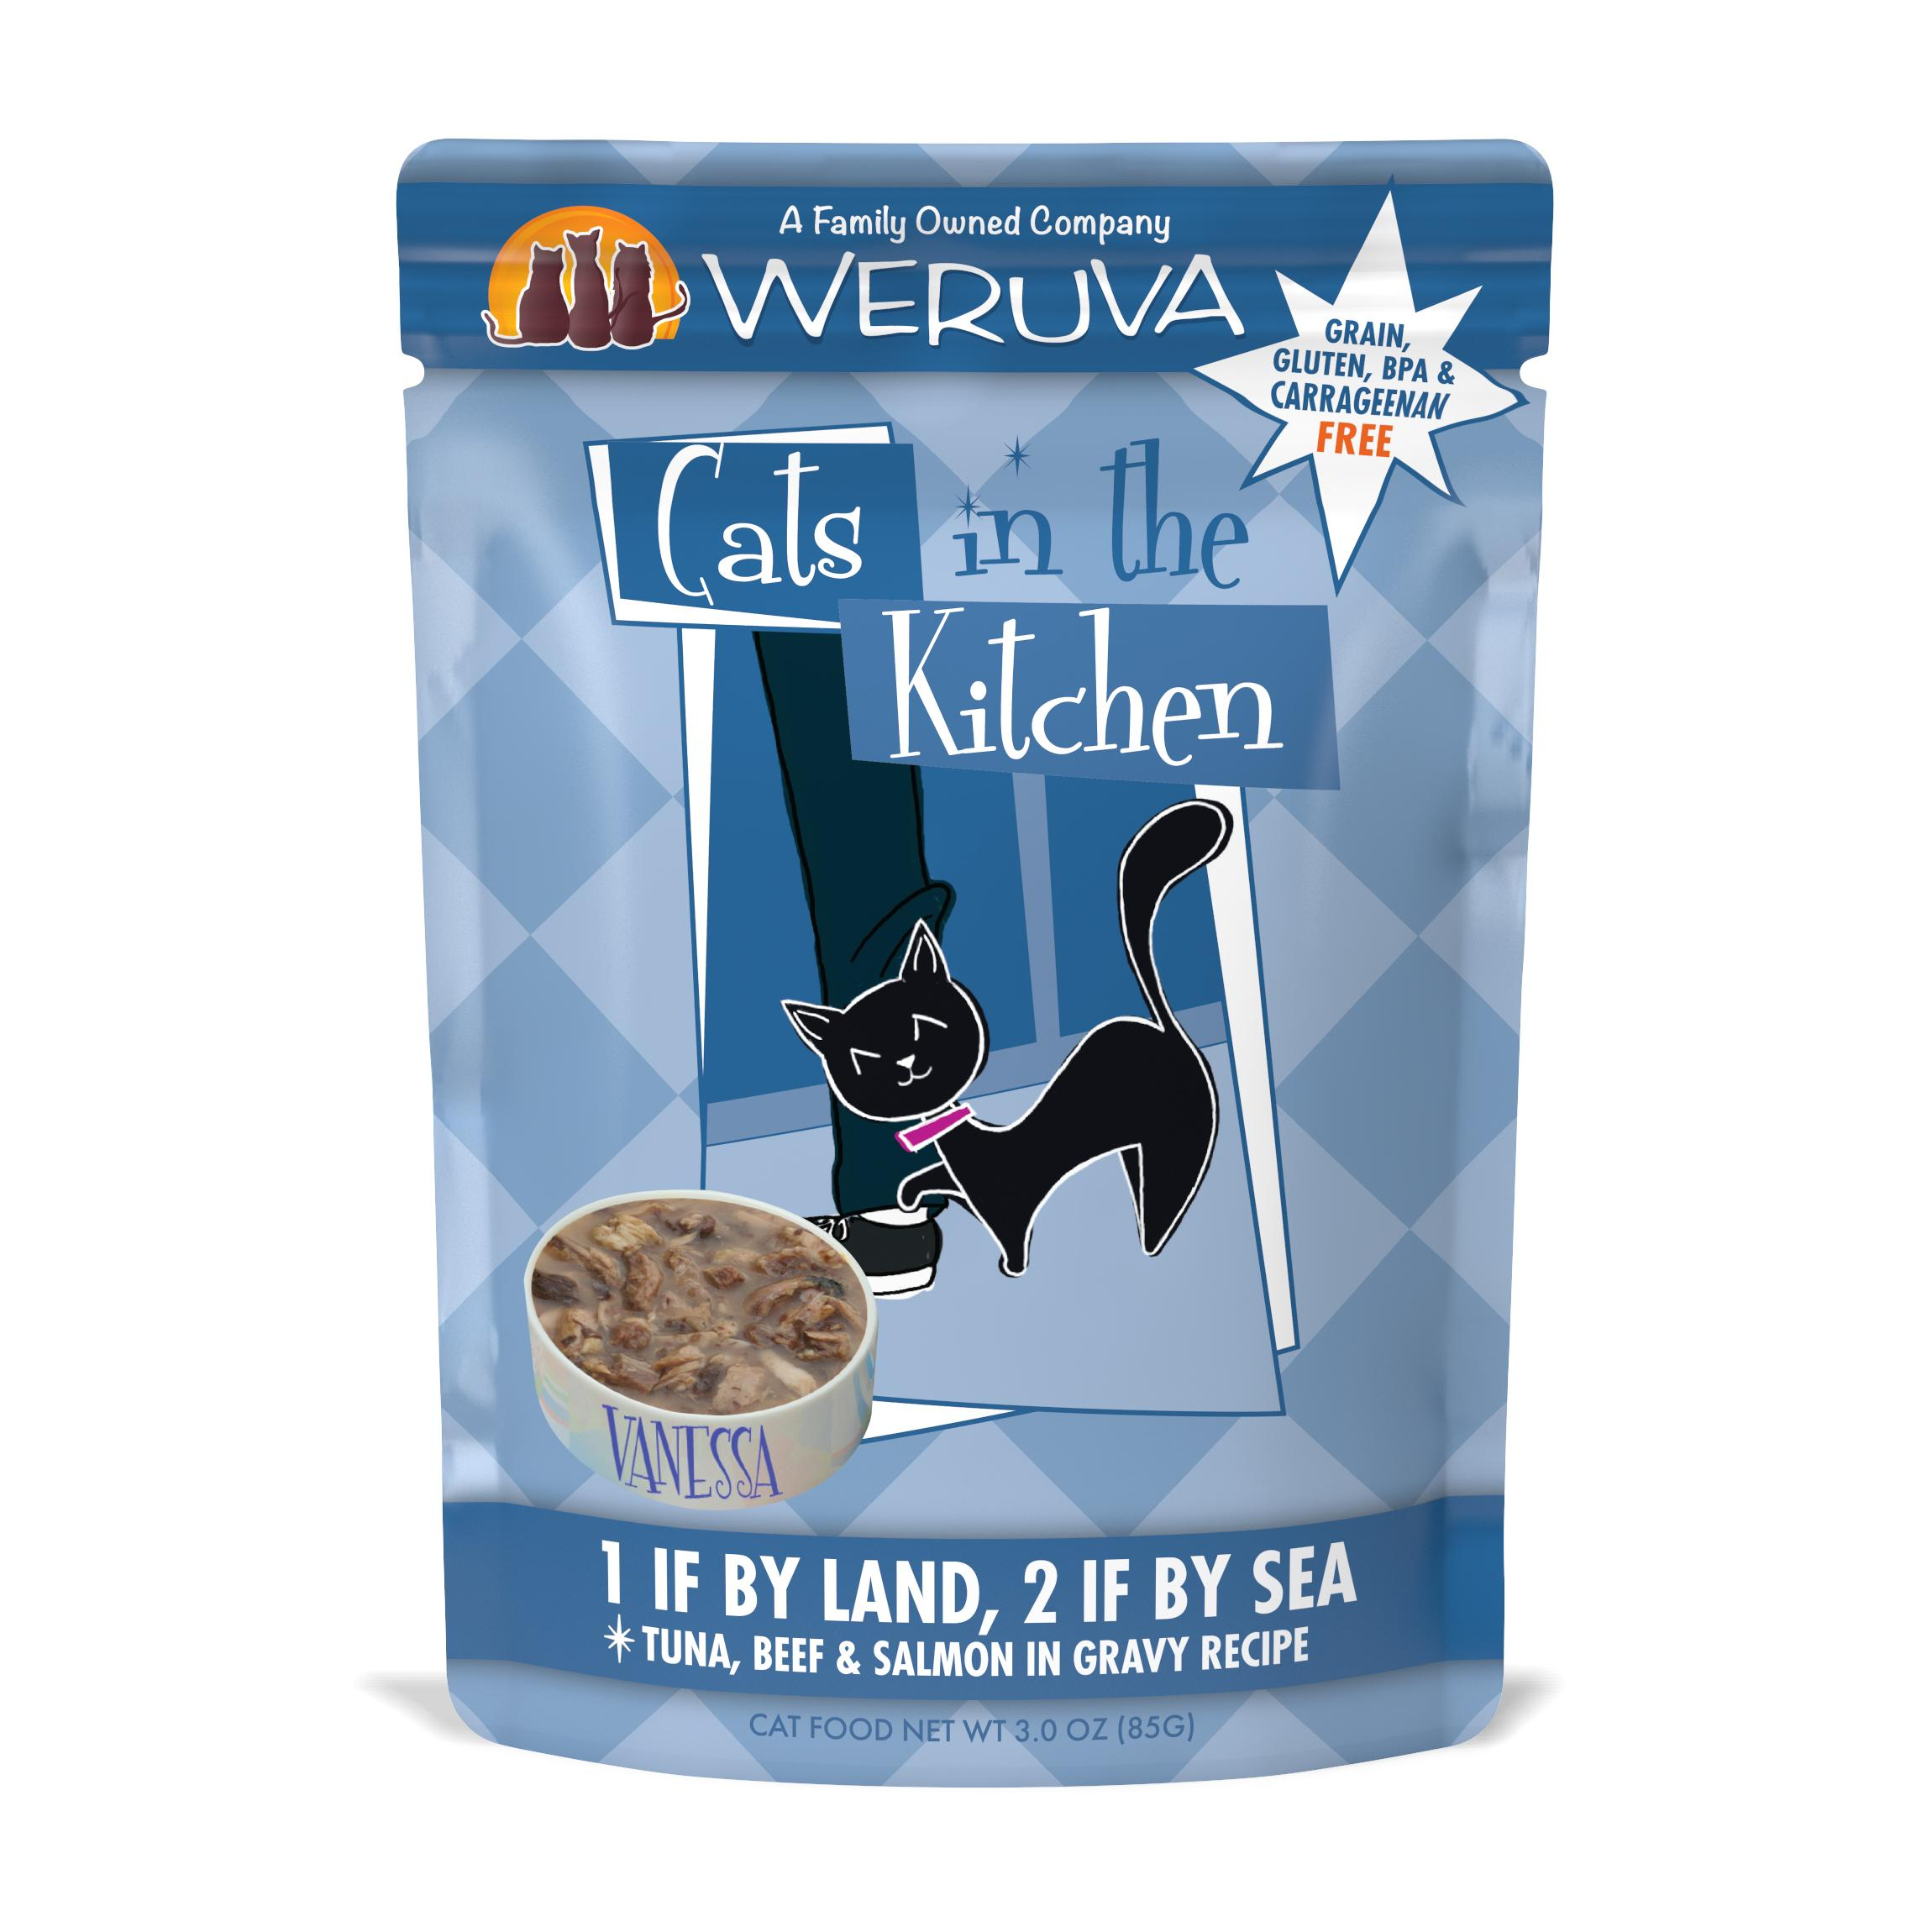 Weruva Cats in the Kitchen 1 If By Land, 2 If By Sea Tuna, Beef & Salmon in Gravy Grain-Free Wet Cat Food Image